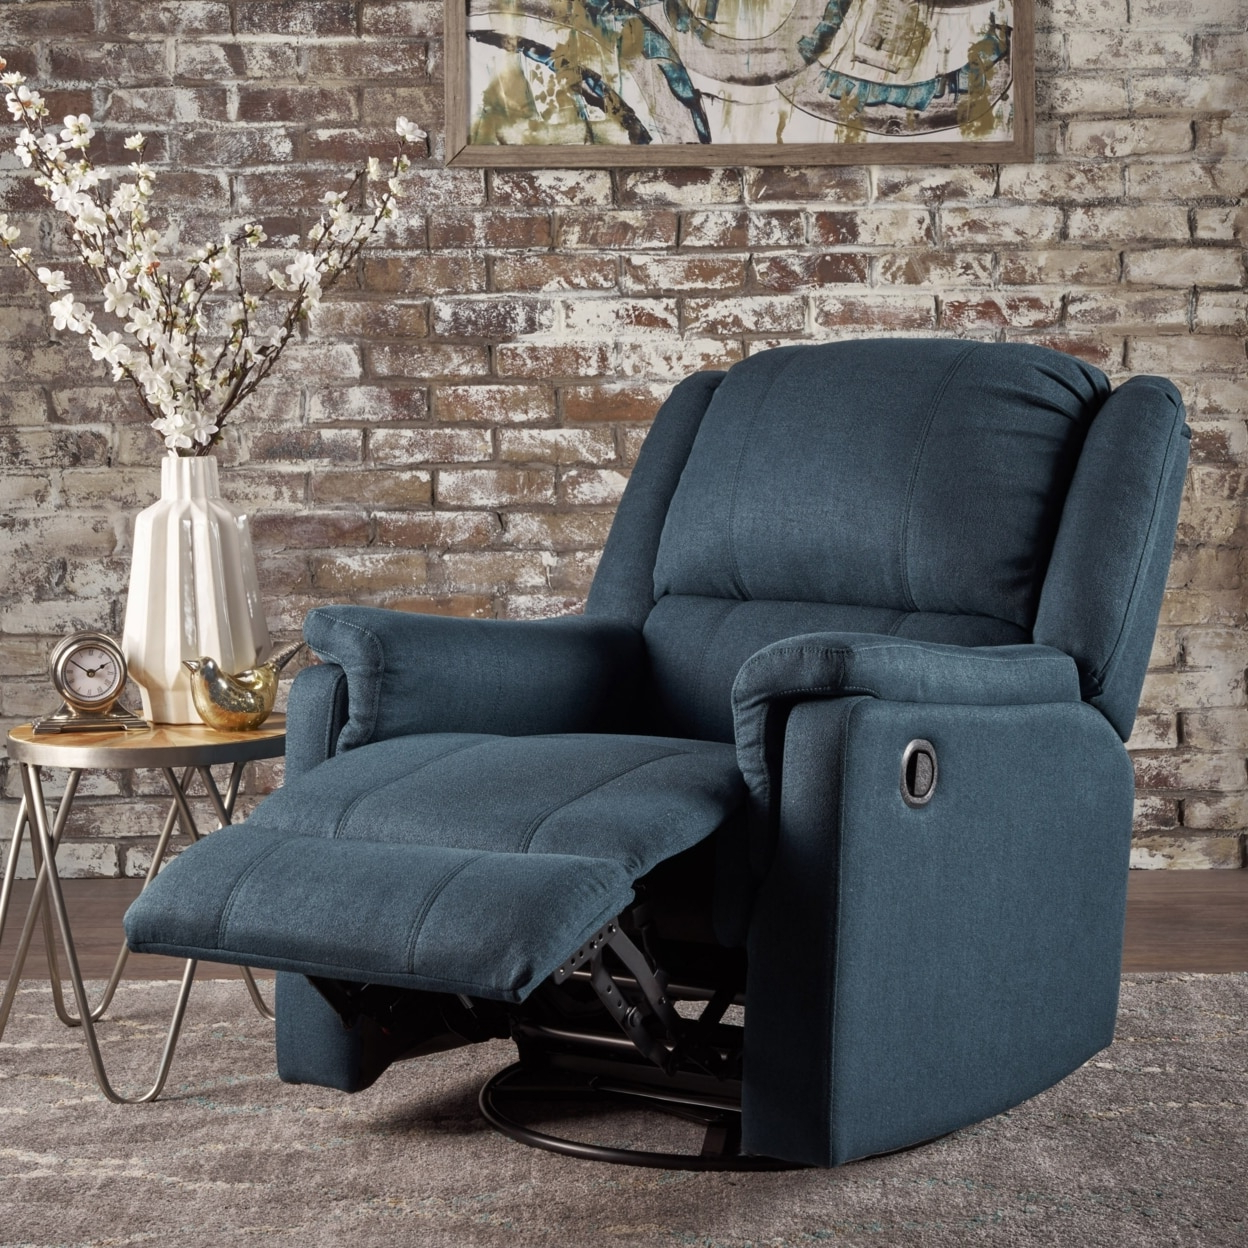 Widely Used Jemma Tufted Fabric Swivel Gliding Recliner Chair In Living Room Pertaining To Decker Ii Fabric Swivel Rocker Recliners (Gallery 6 of 20)